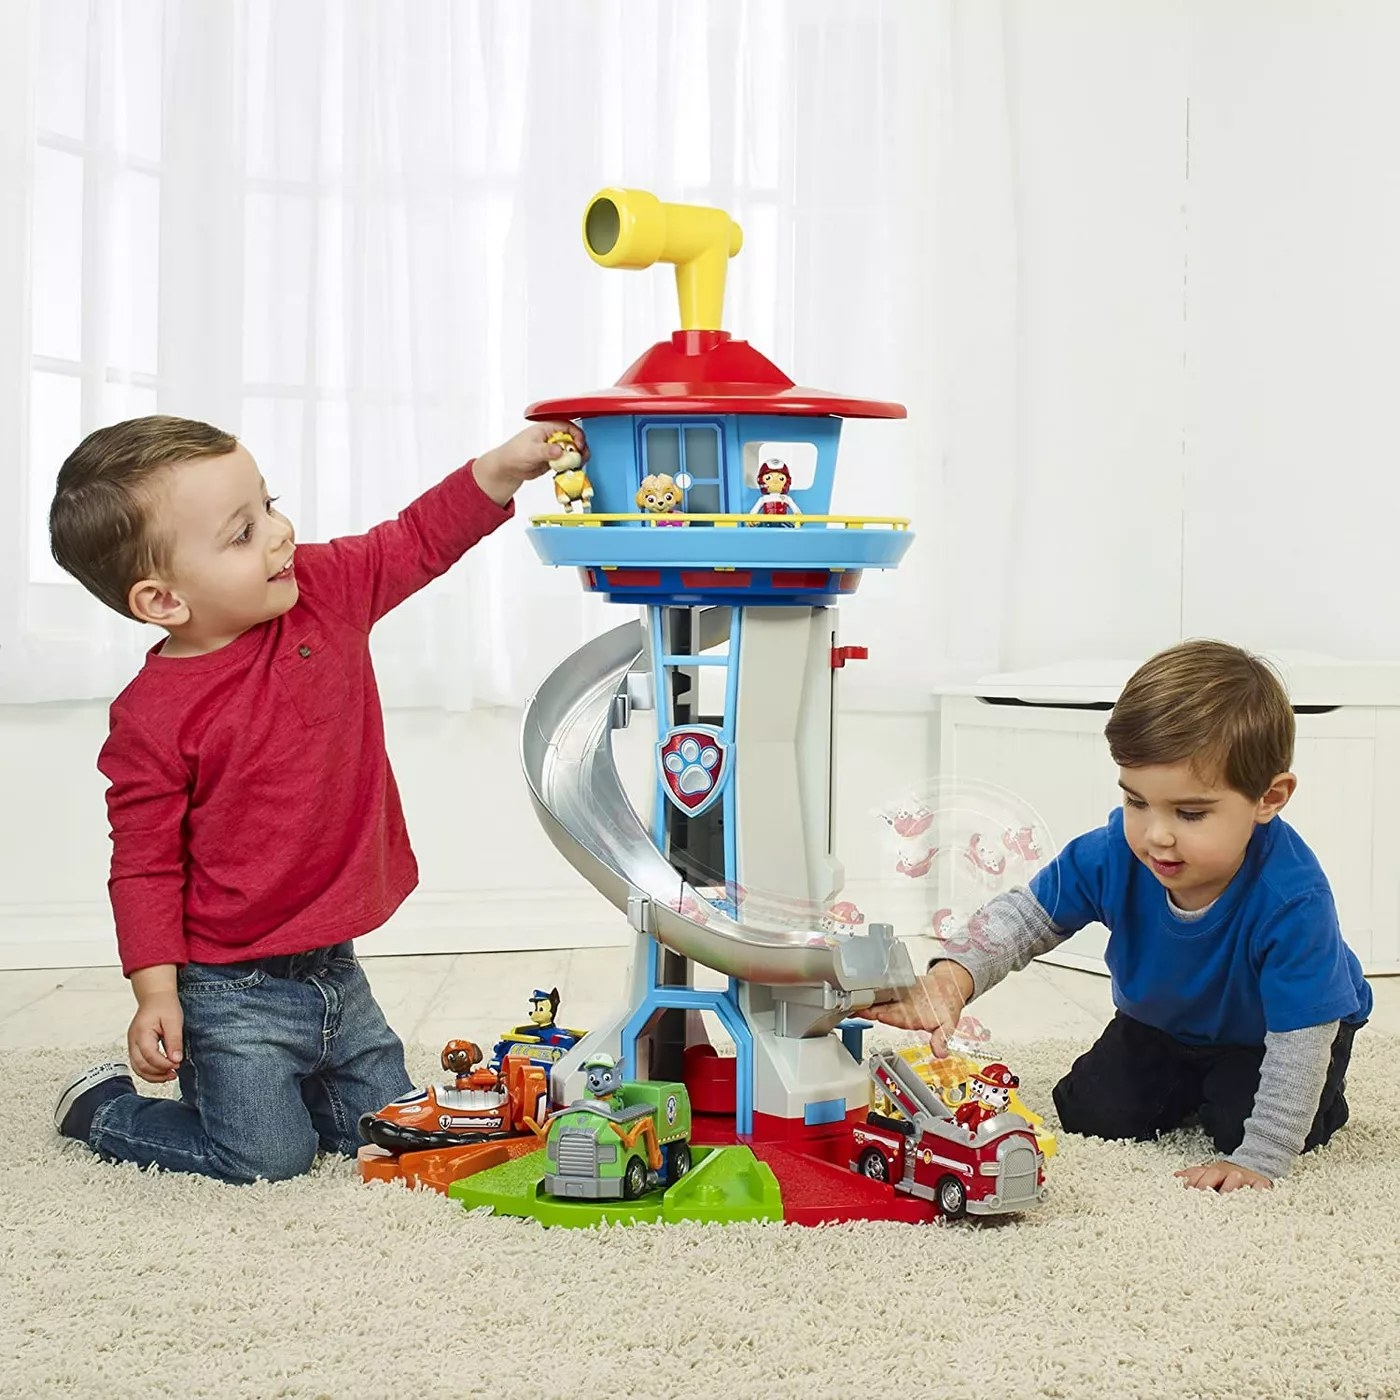 Two toddlers playing with the tower